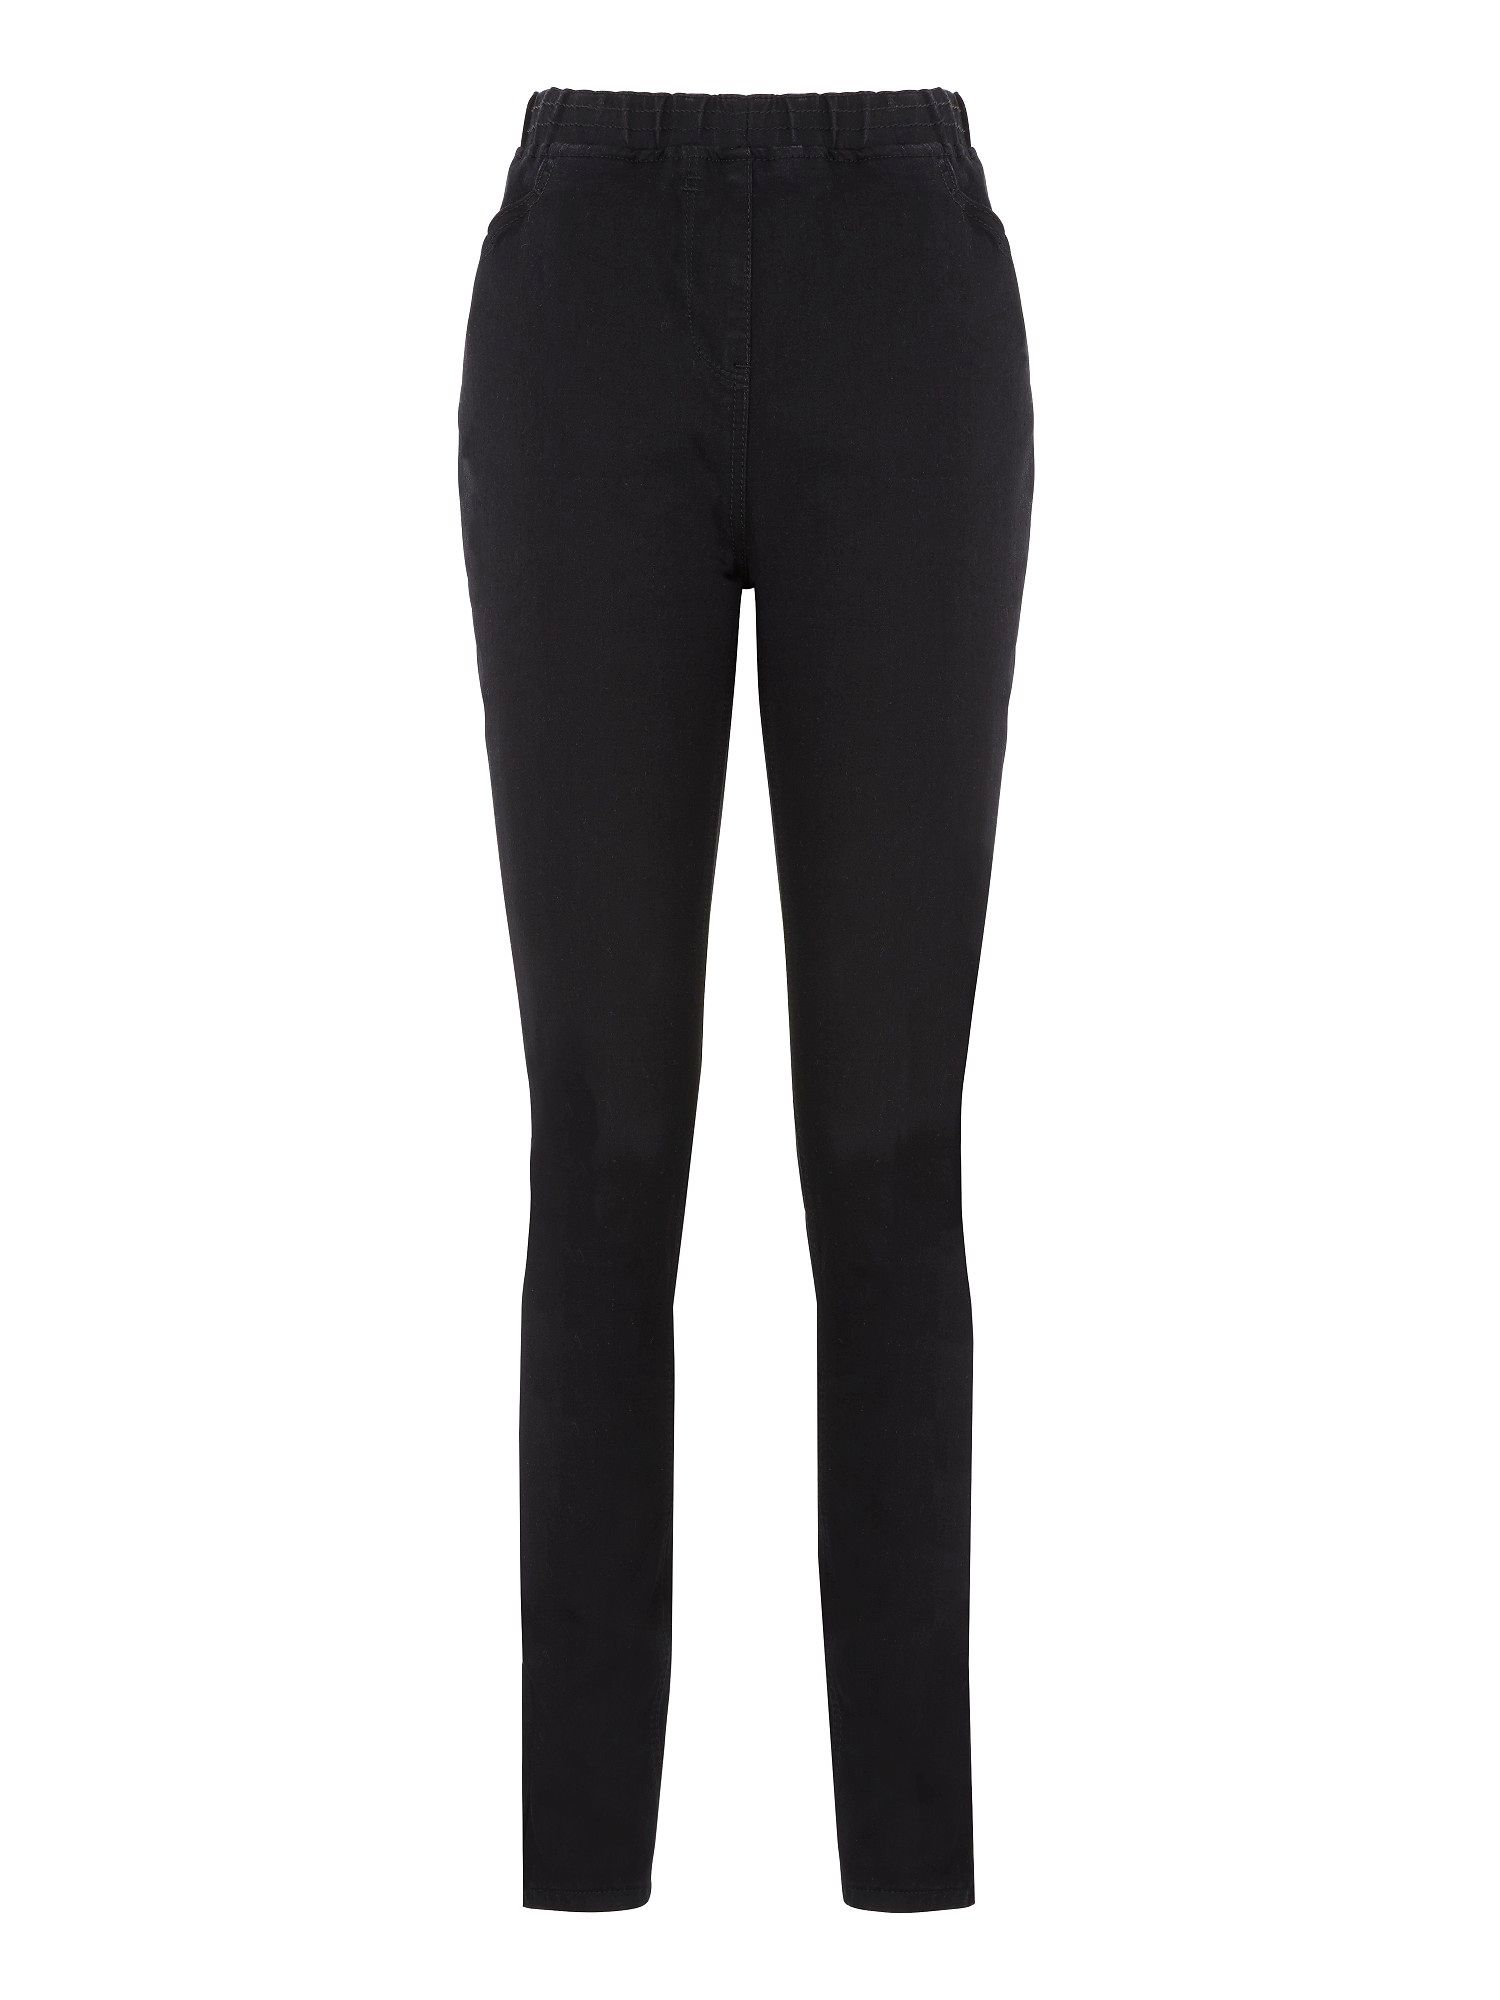 Black stretch denim jeggings regular